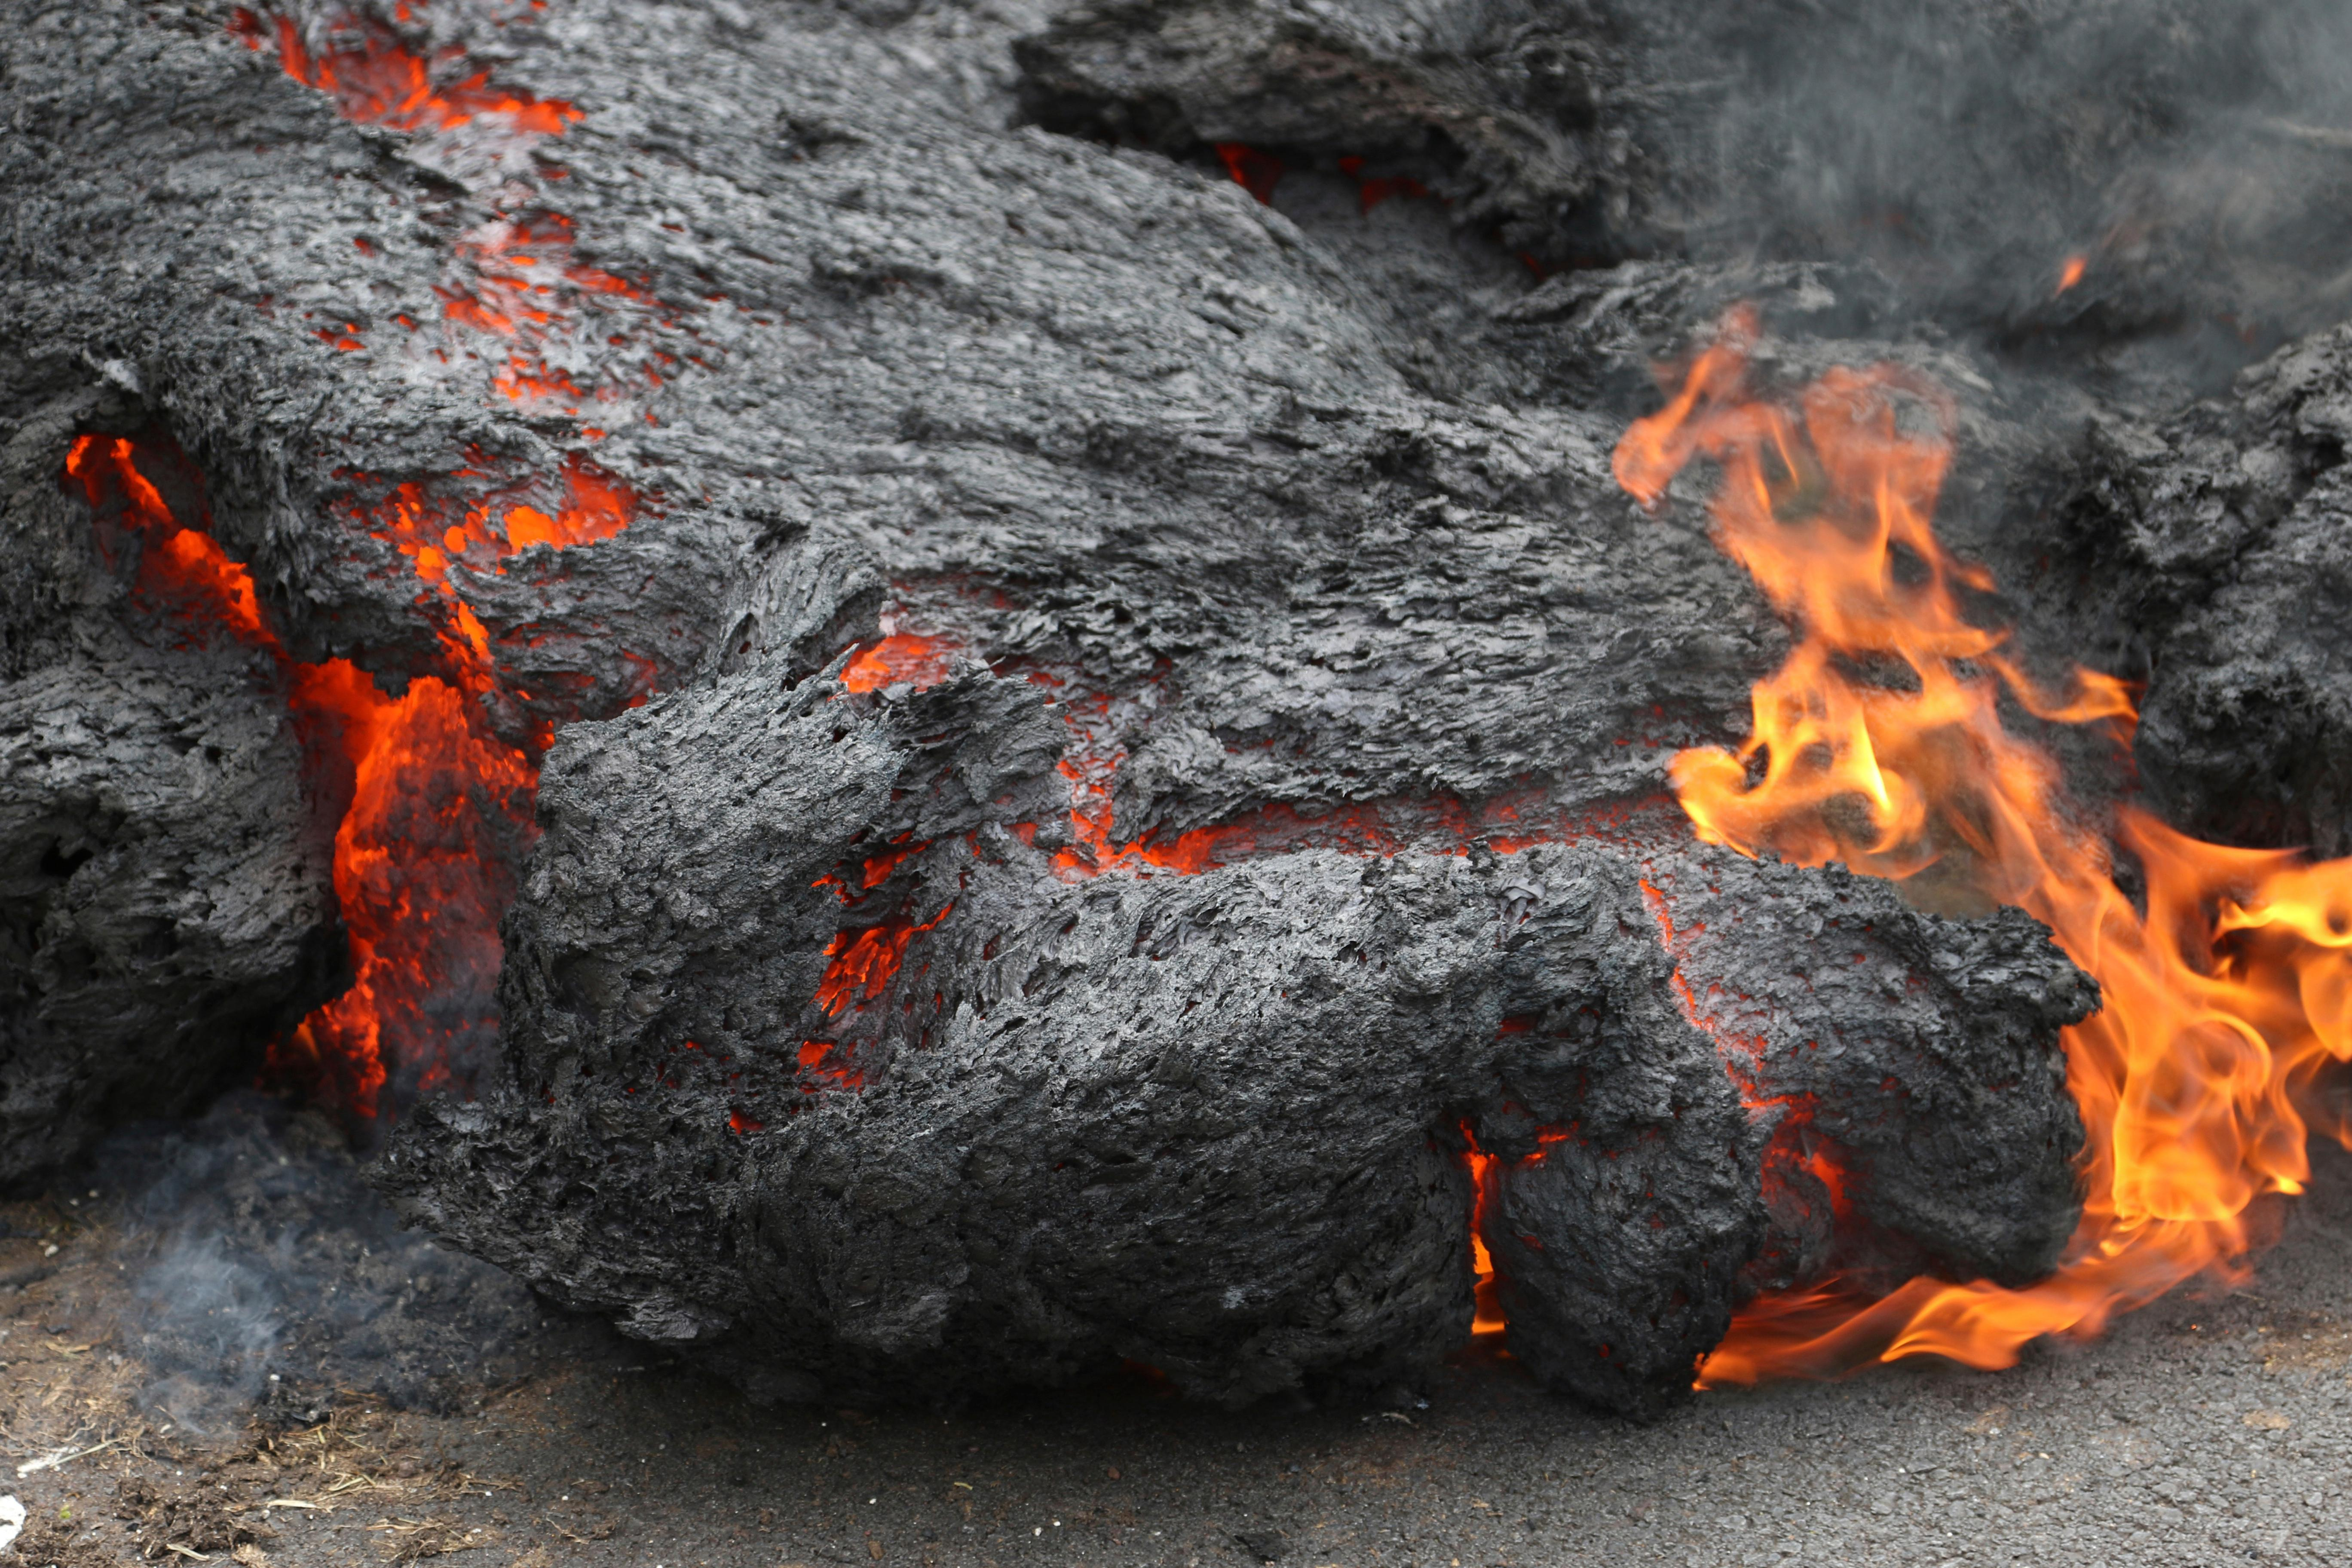 File - In this May 5, 2018, file photo, lava burns across a road in the Leilani Estates subdivision near Pahoa, Hawaii. The lava hisses, crackles and pops. It roars like an engine as it sloshes and bubbles. It shoots into the sky, bright orange and full of danger, or oozes along the pavement, a giant bubbling blob of black marshmallow-like fluff, crushing homes and making roads impassable. (AP Photo/Caleb Jones, File)